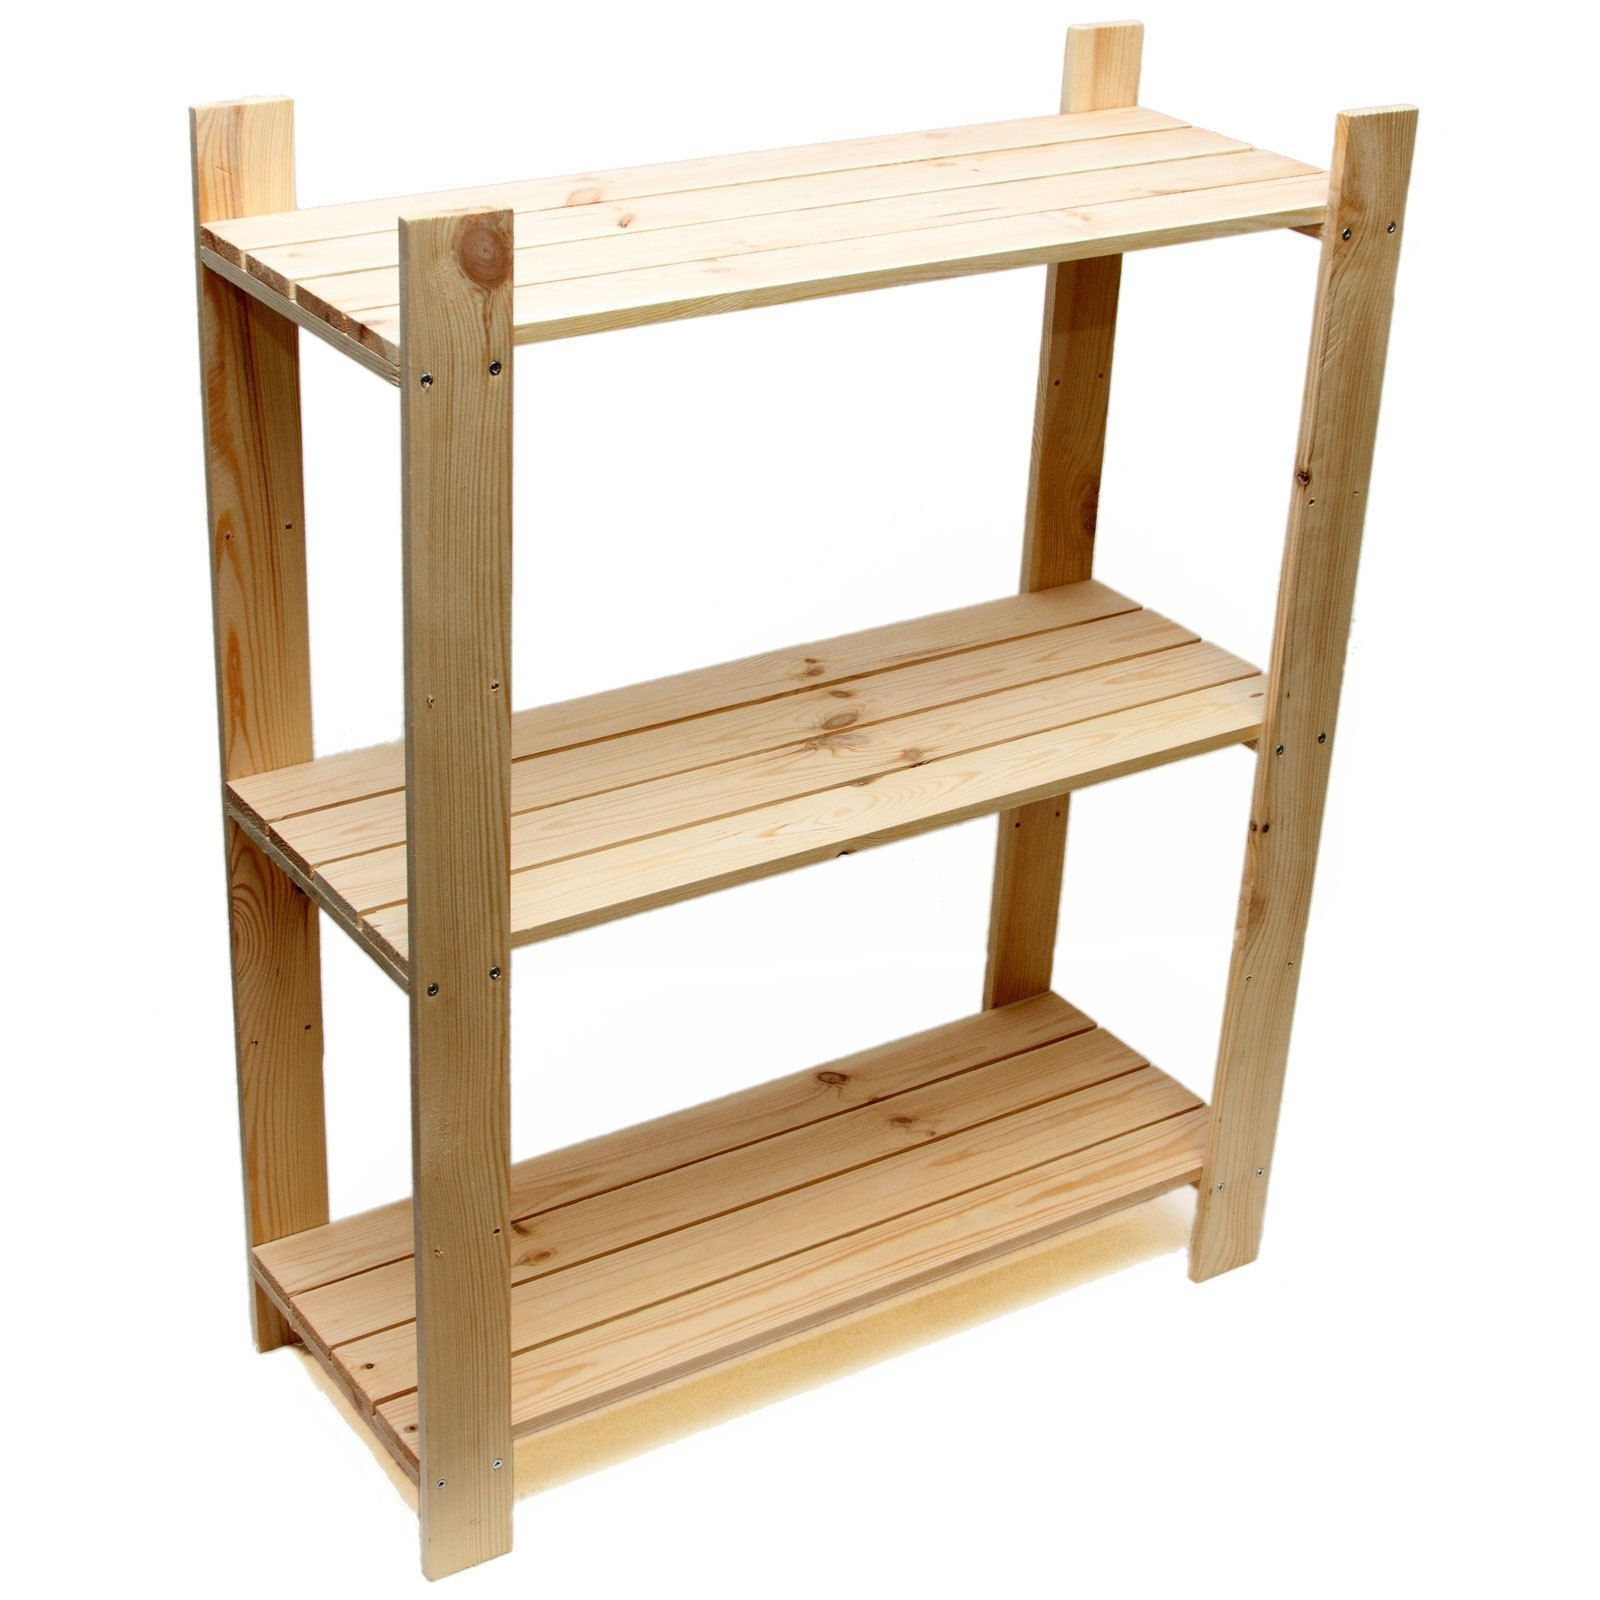 3 Tier Pine Shelf Unit – Pine Shelves With 3 Wooden Shelves With Regard To Well Known Wooden Shelving Units (View 6 of 15)